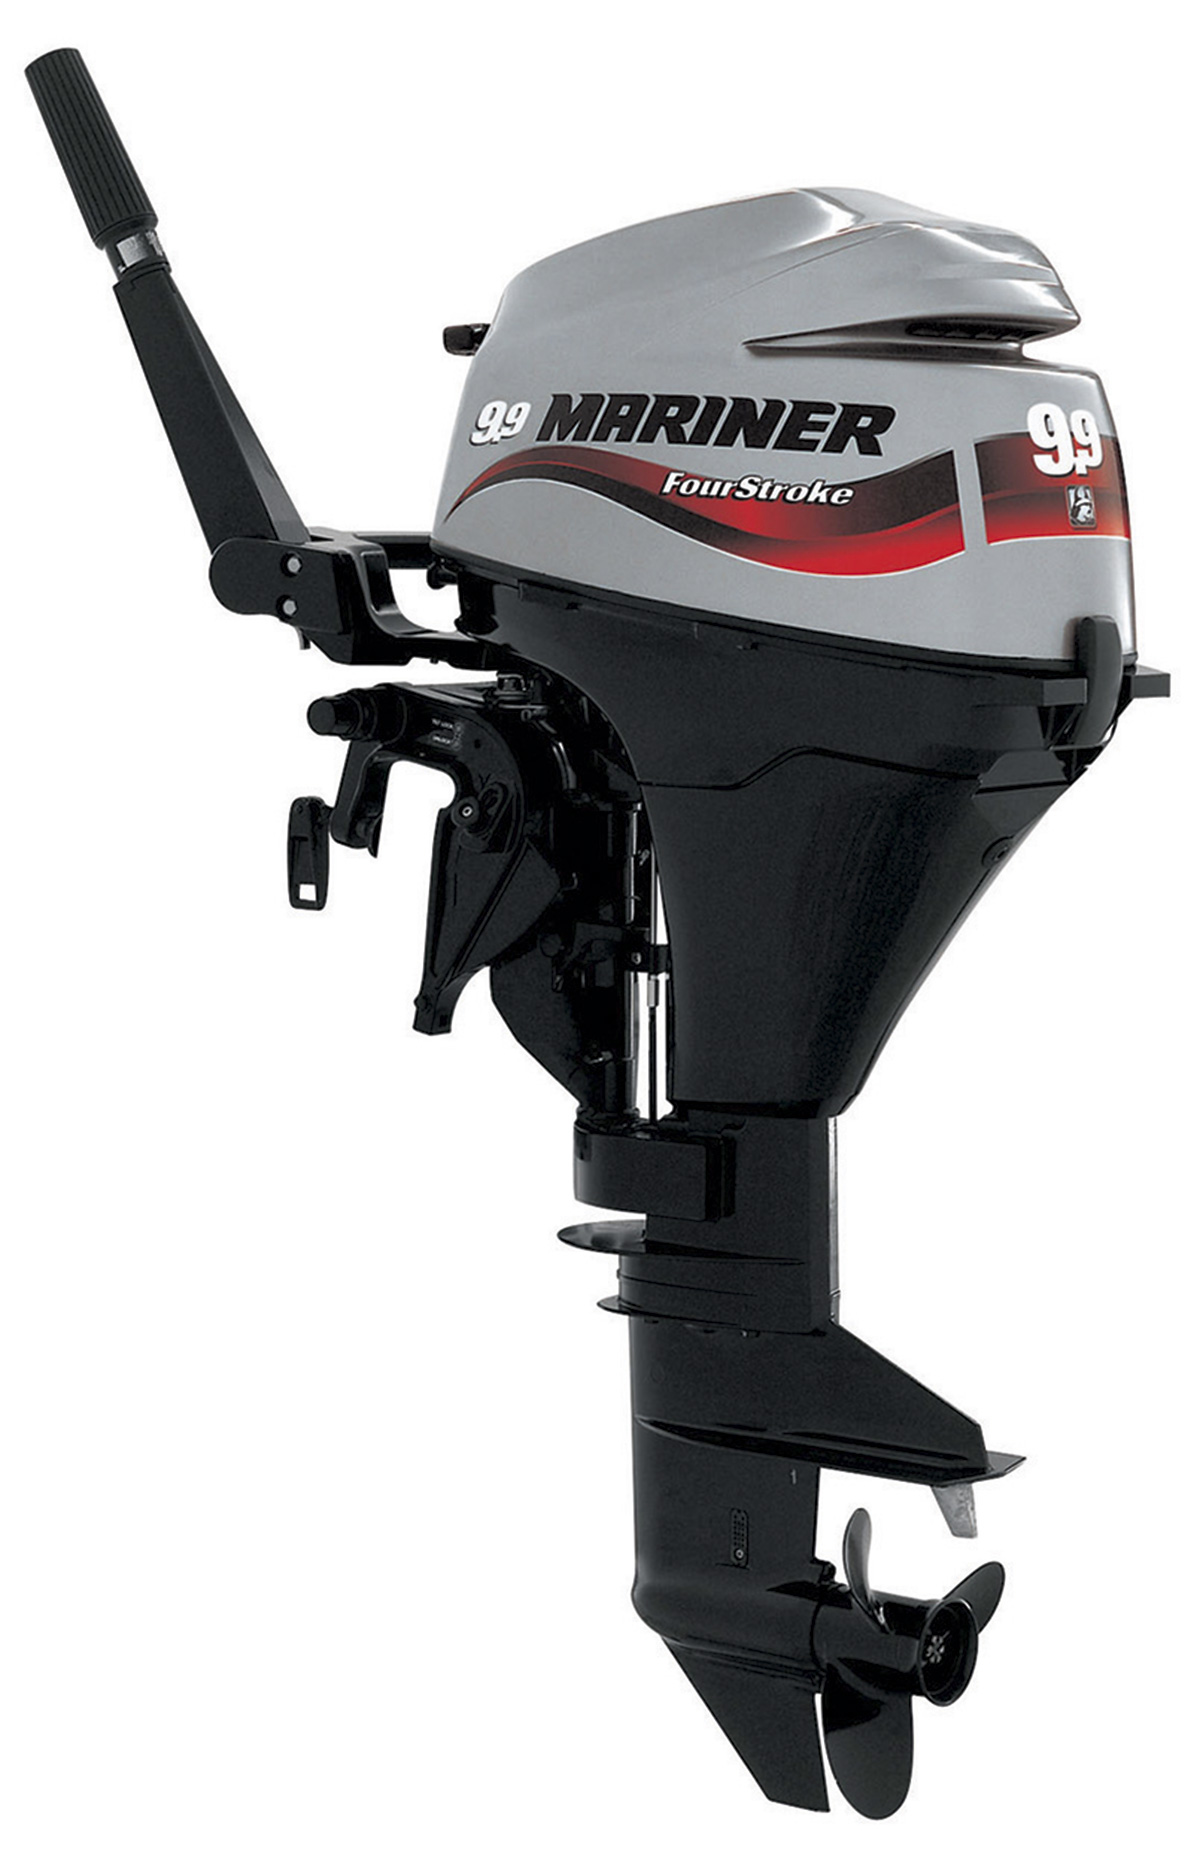 the ultimate 10hp outboard engine group test page 4 of 7 motor rh mby com Mercury Outboard Serial Number Plates mercury 9.9 hp outboard manual